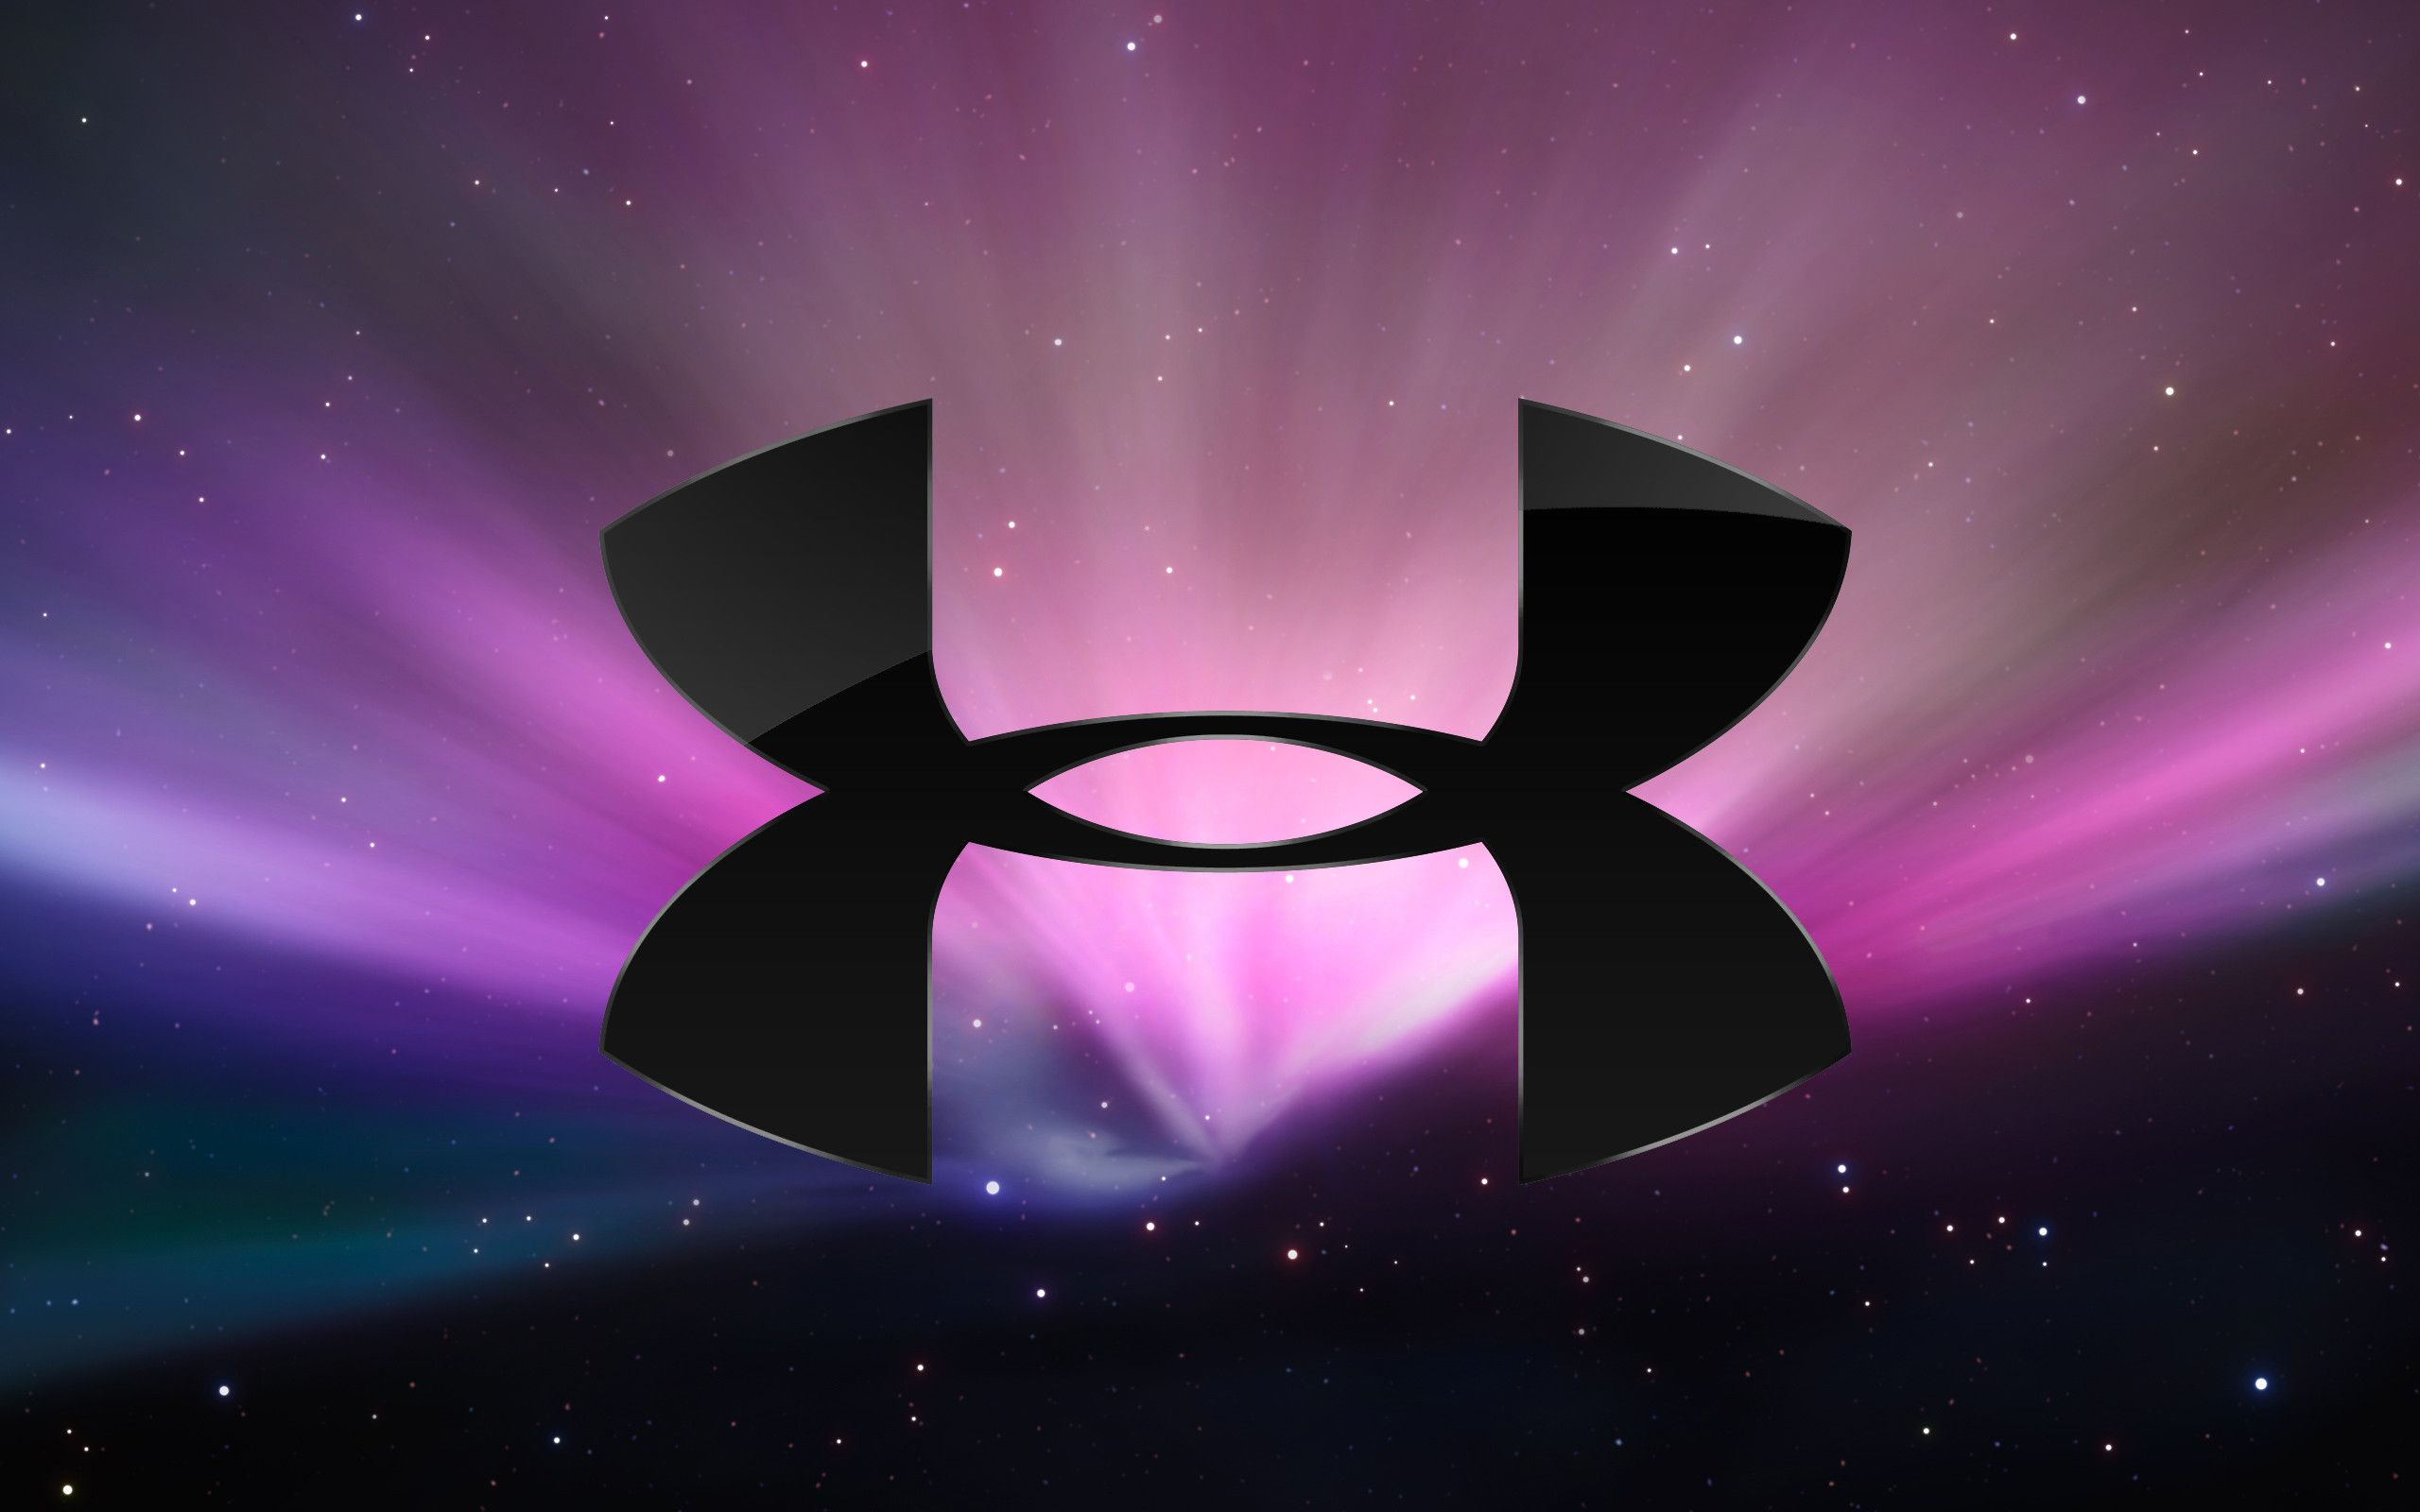 Under Armor Wallpaper